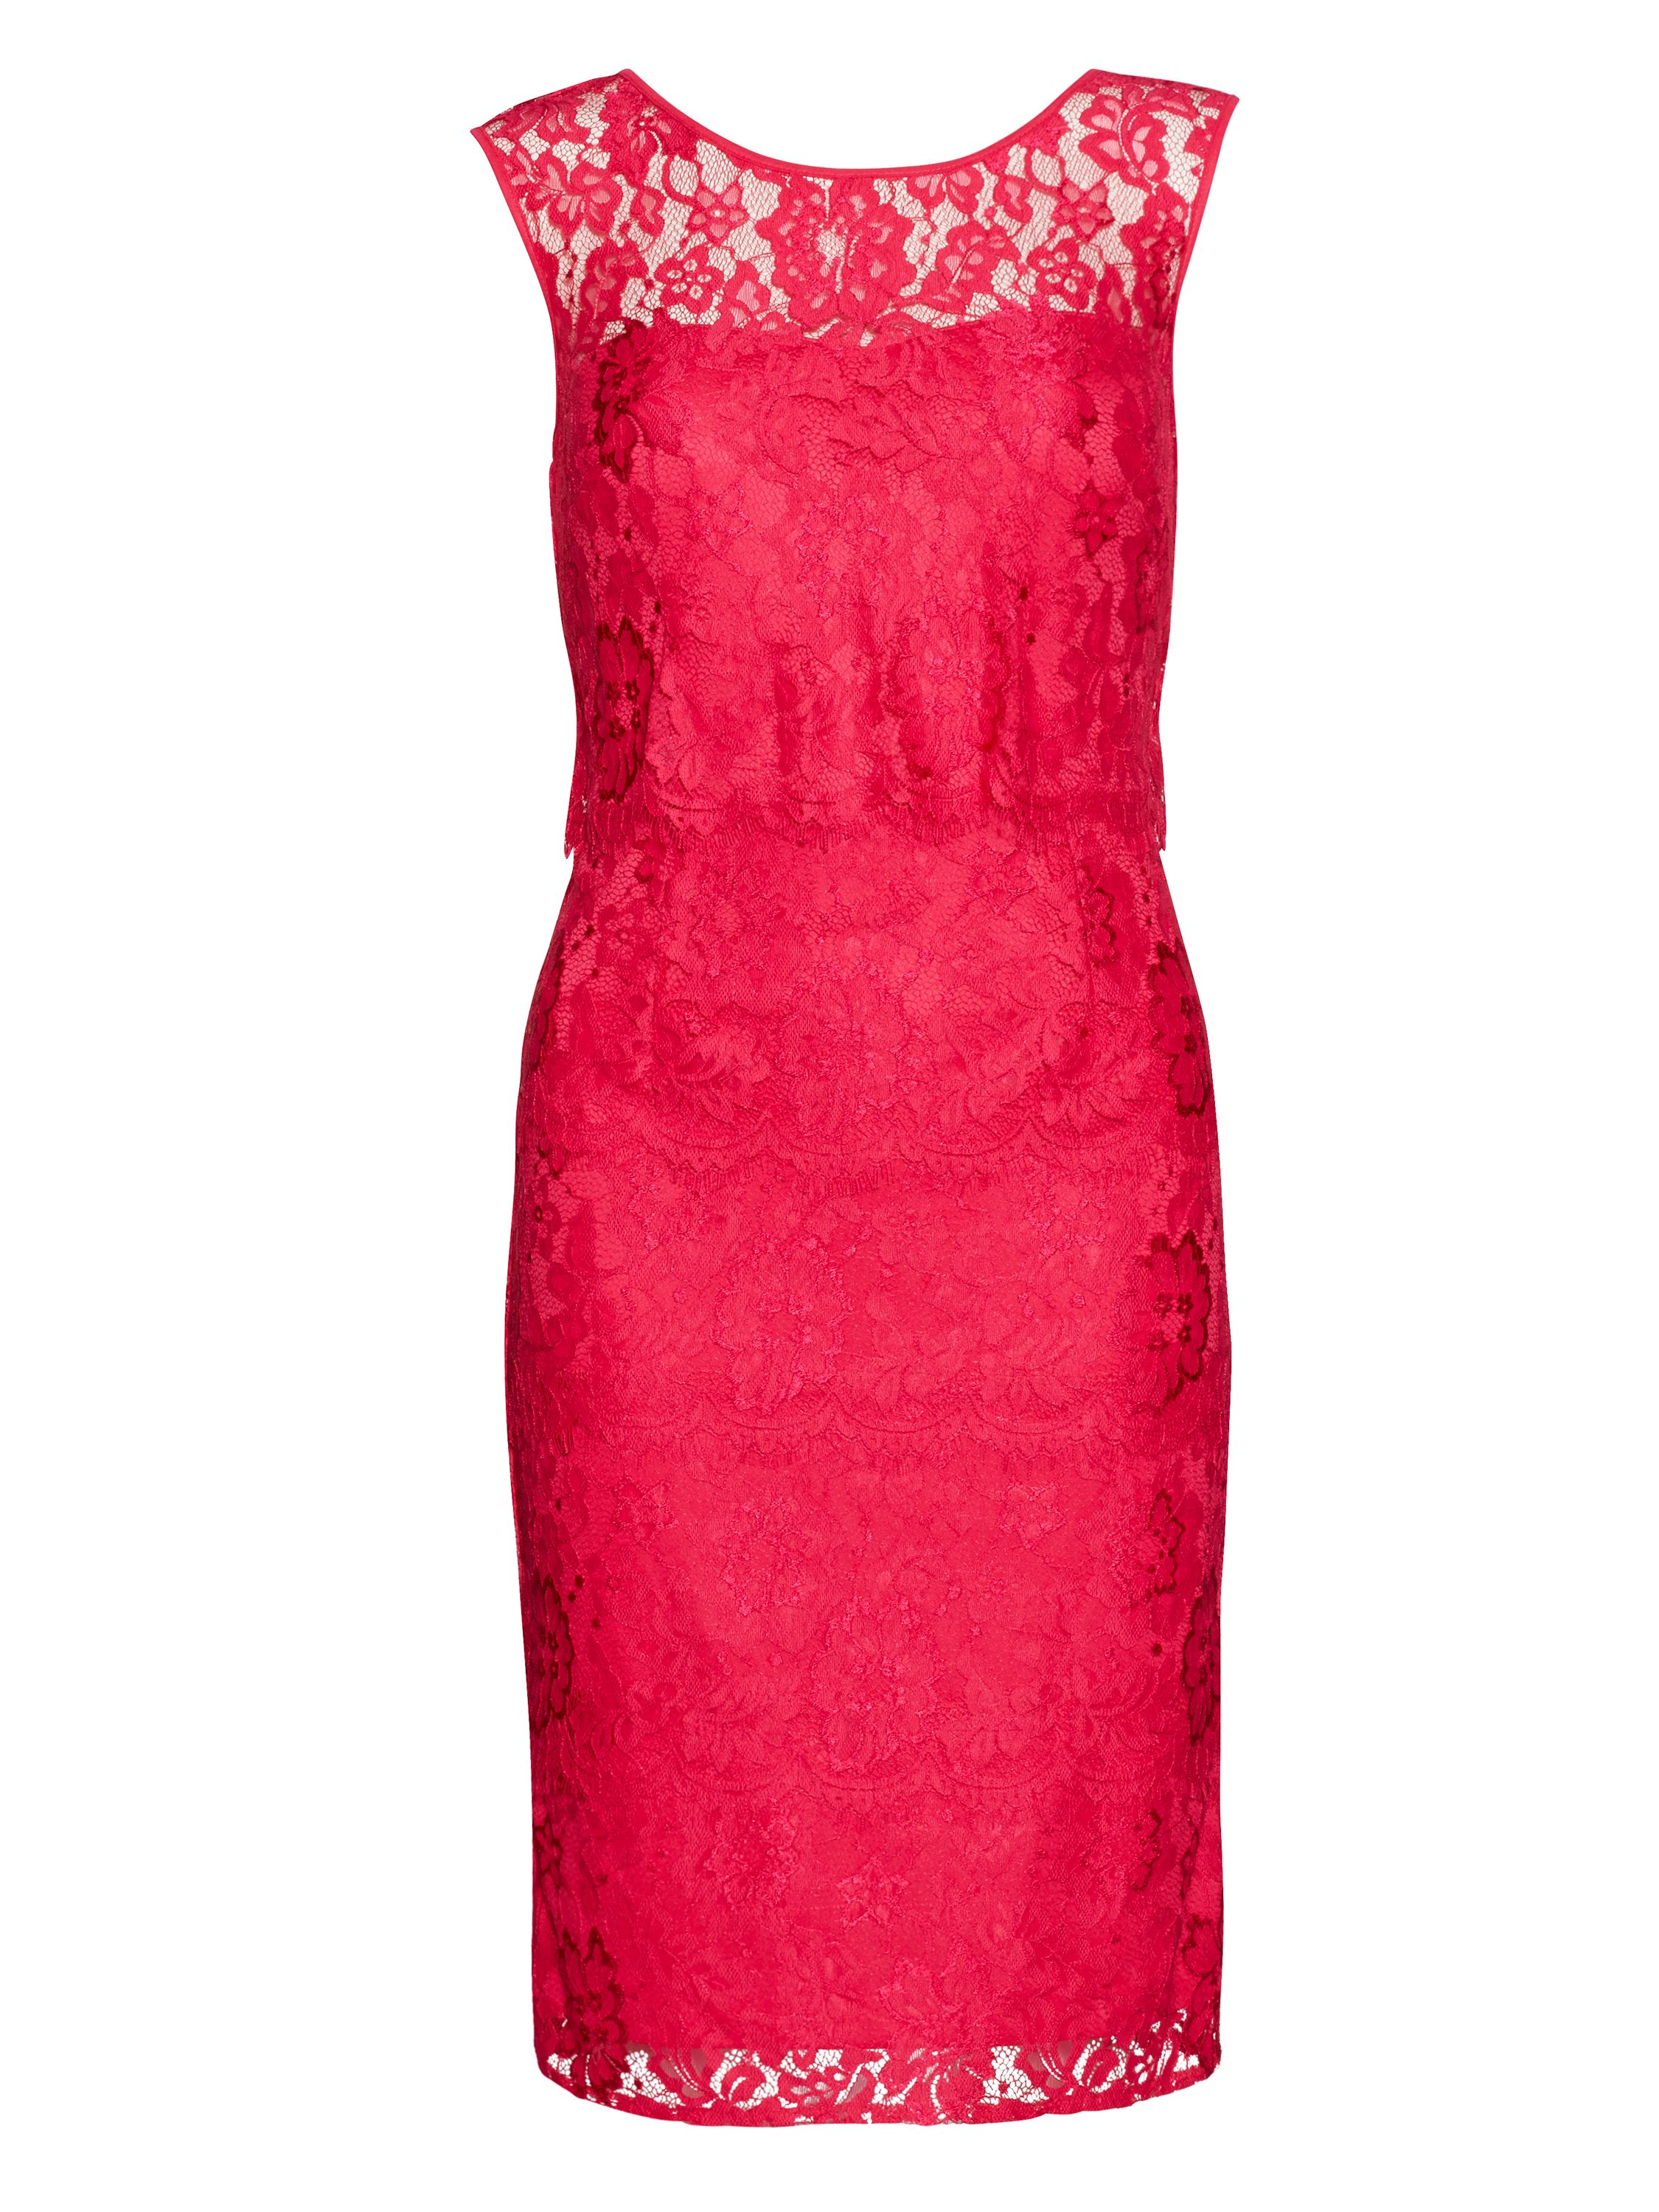 Gina Bacconi Layered scallop flower lace dress, Pink